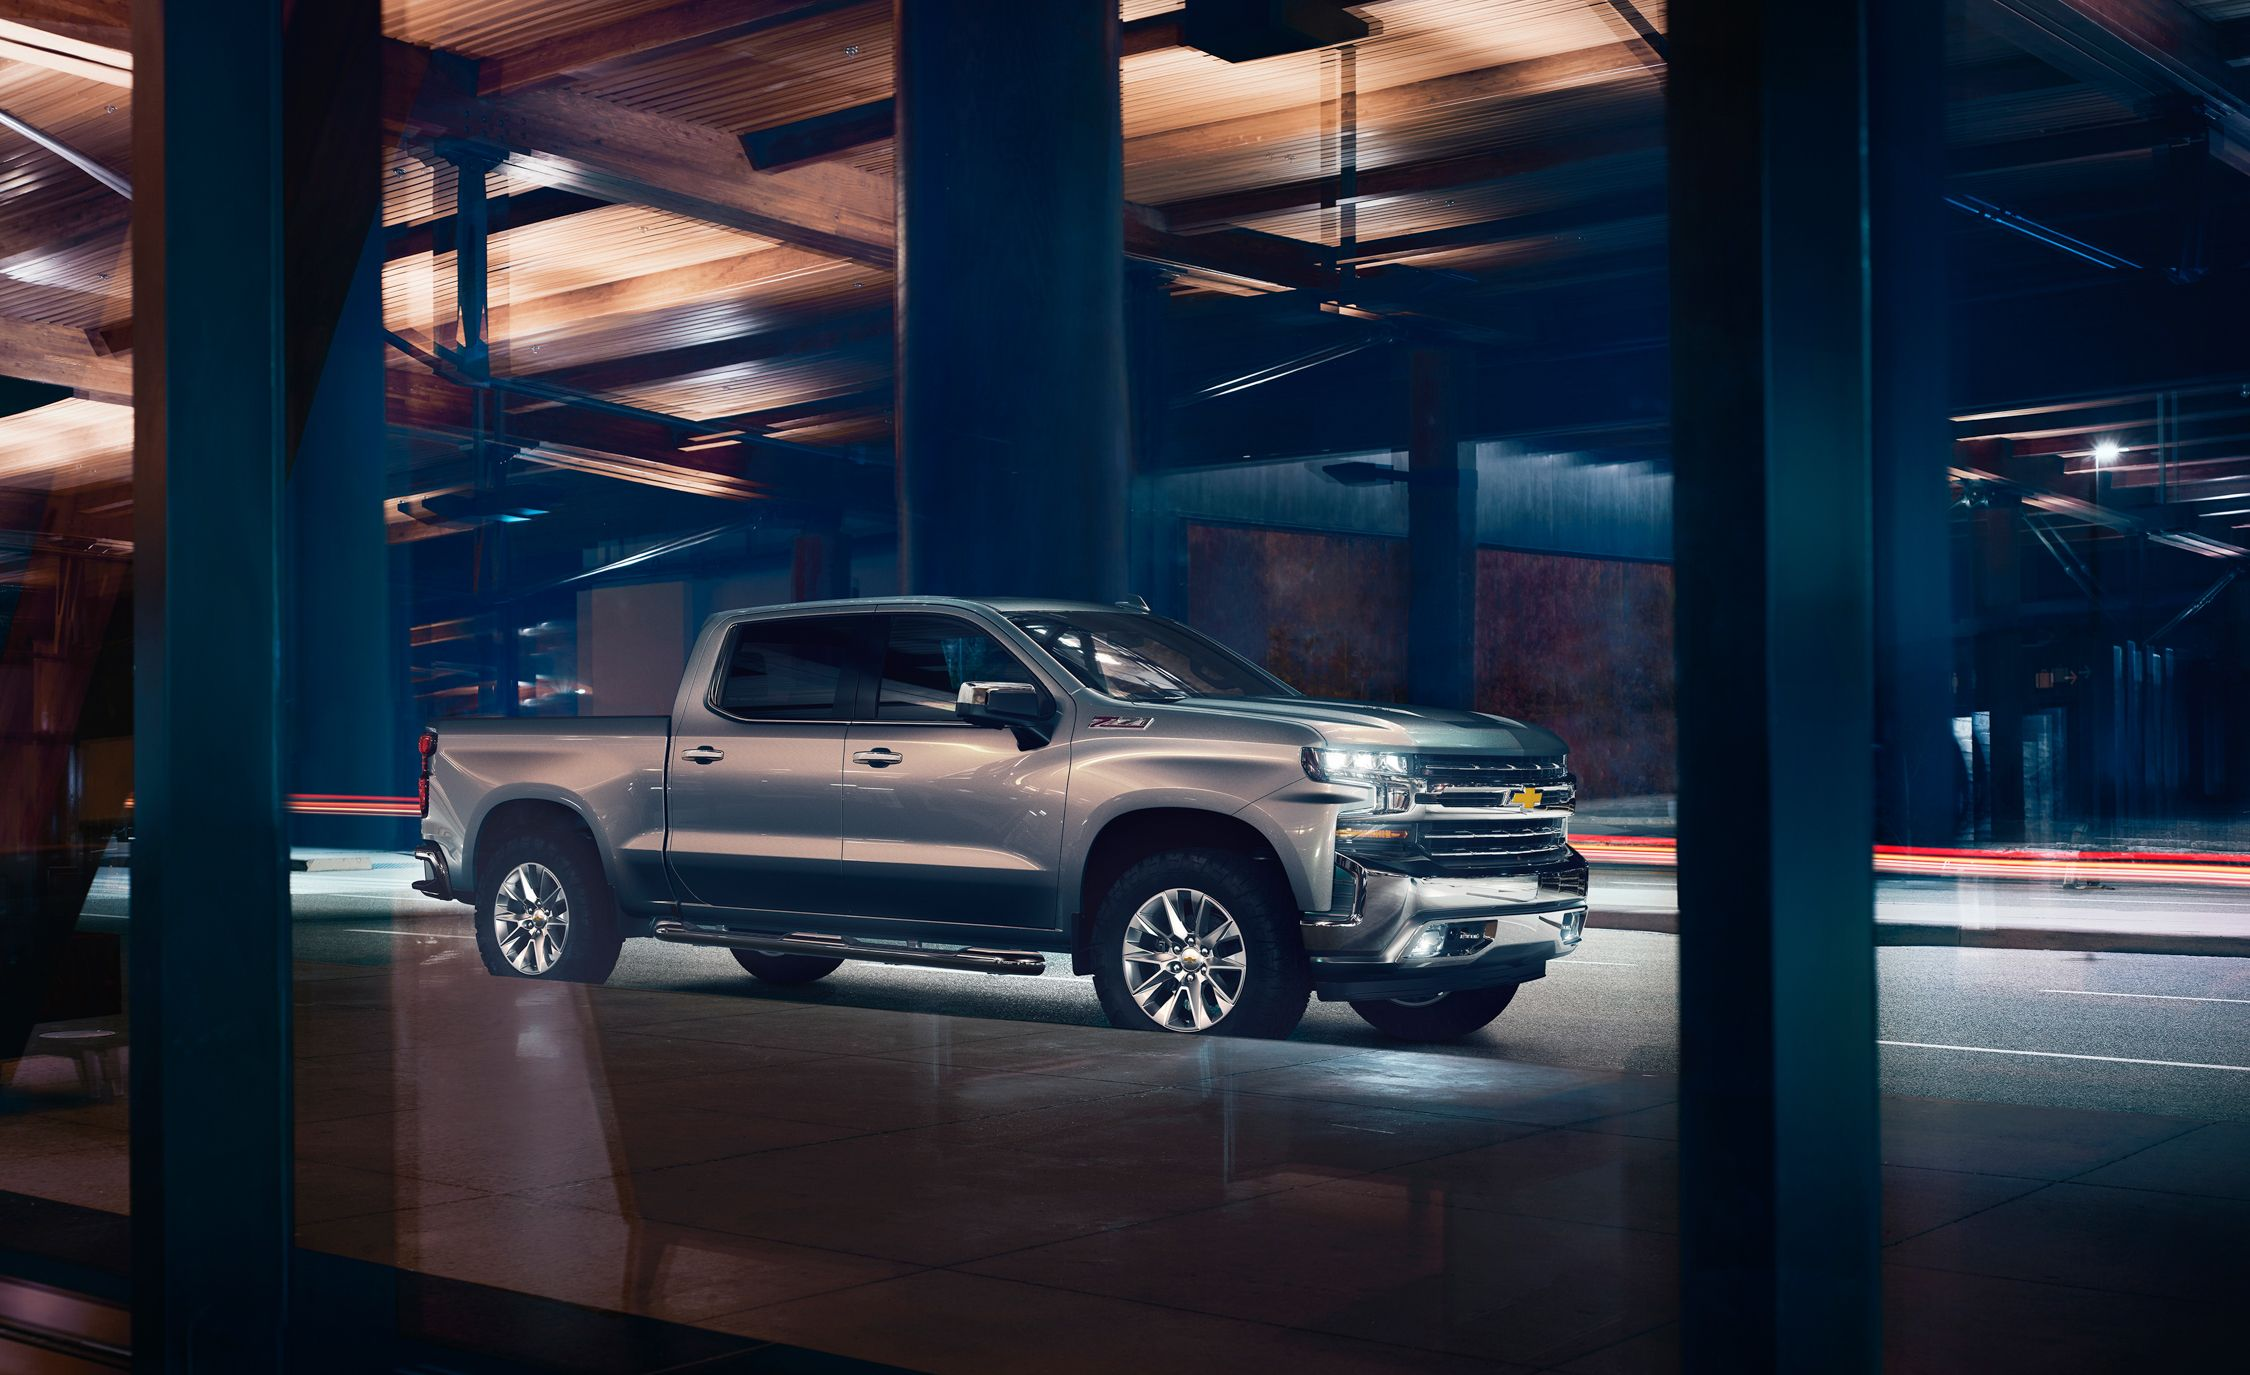 2019 Chevrolet Silverado Priced: Some Models Are Higher ...